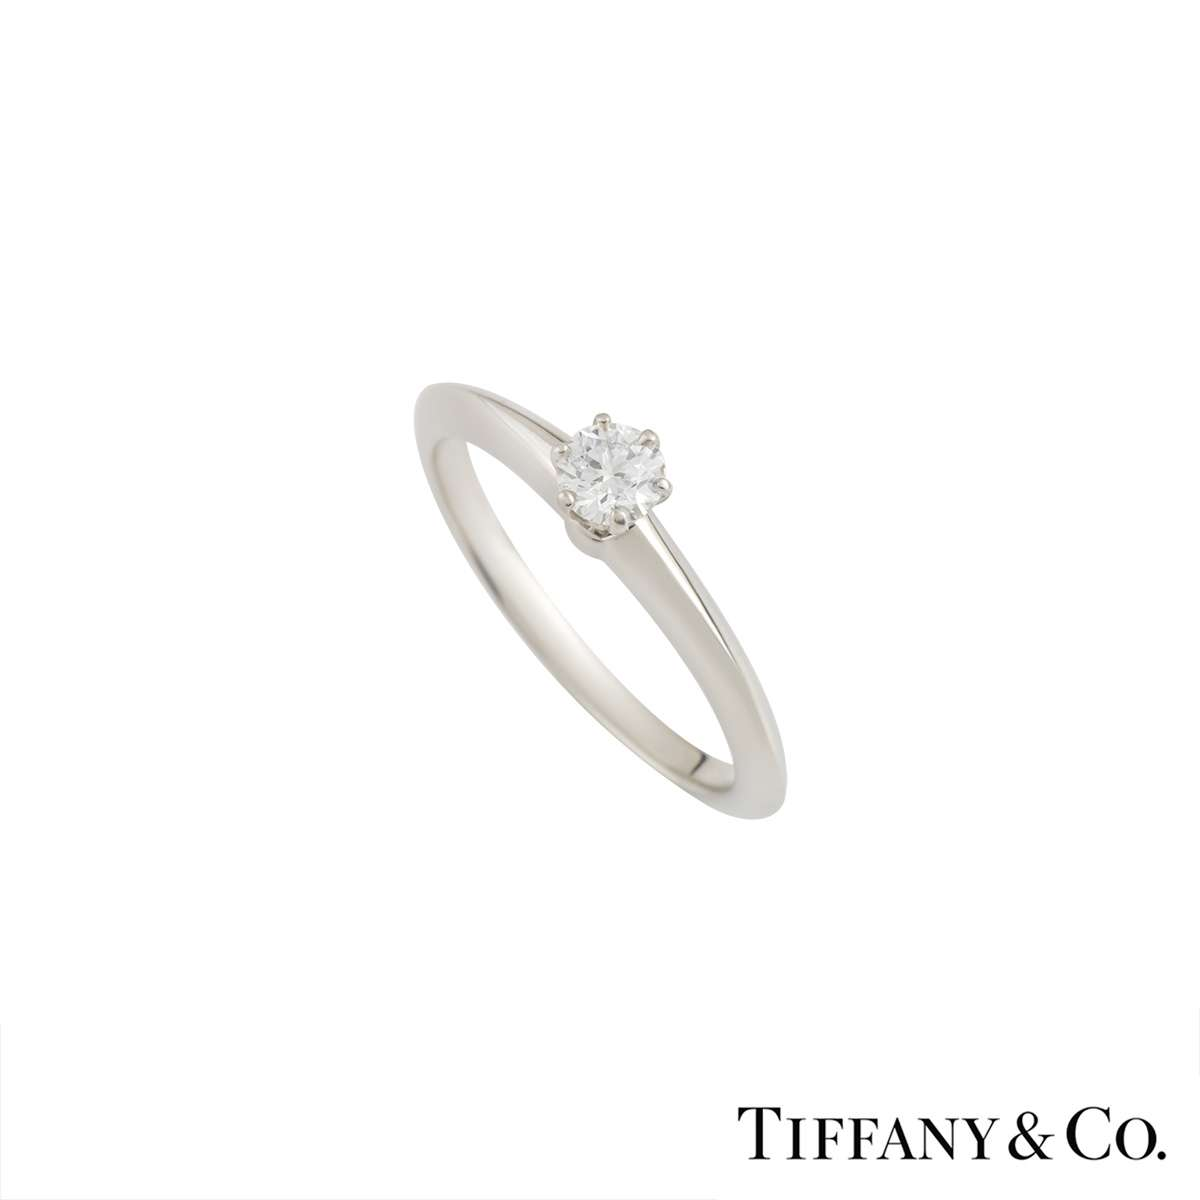 Tiffany & Co Diamond Ring In Platinum 0.21ct G/VS1